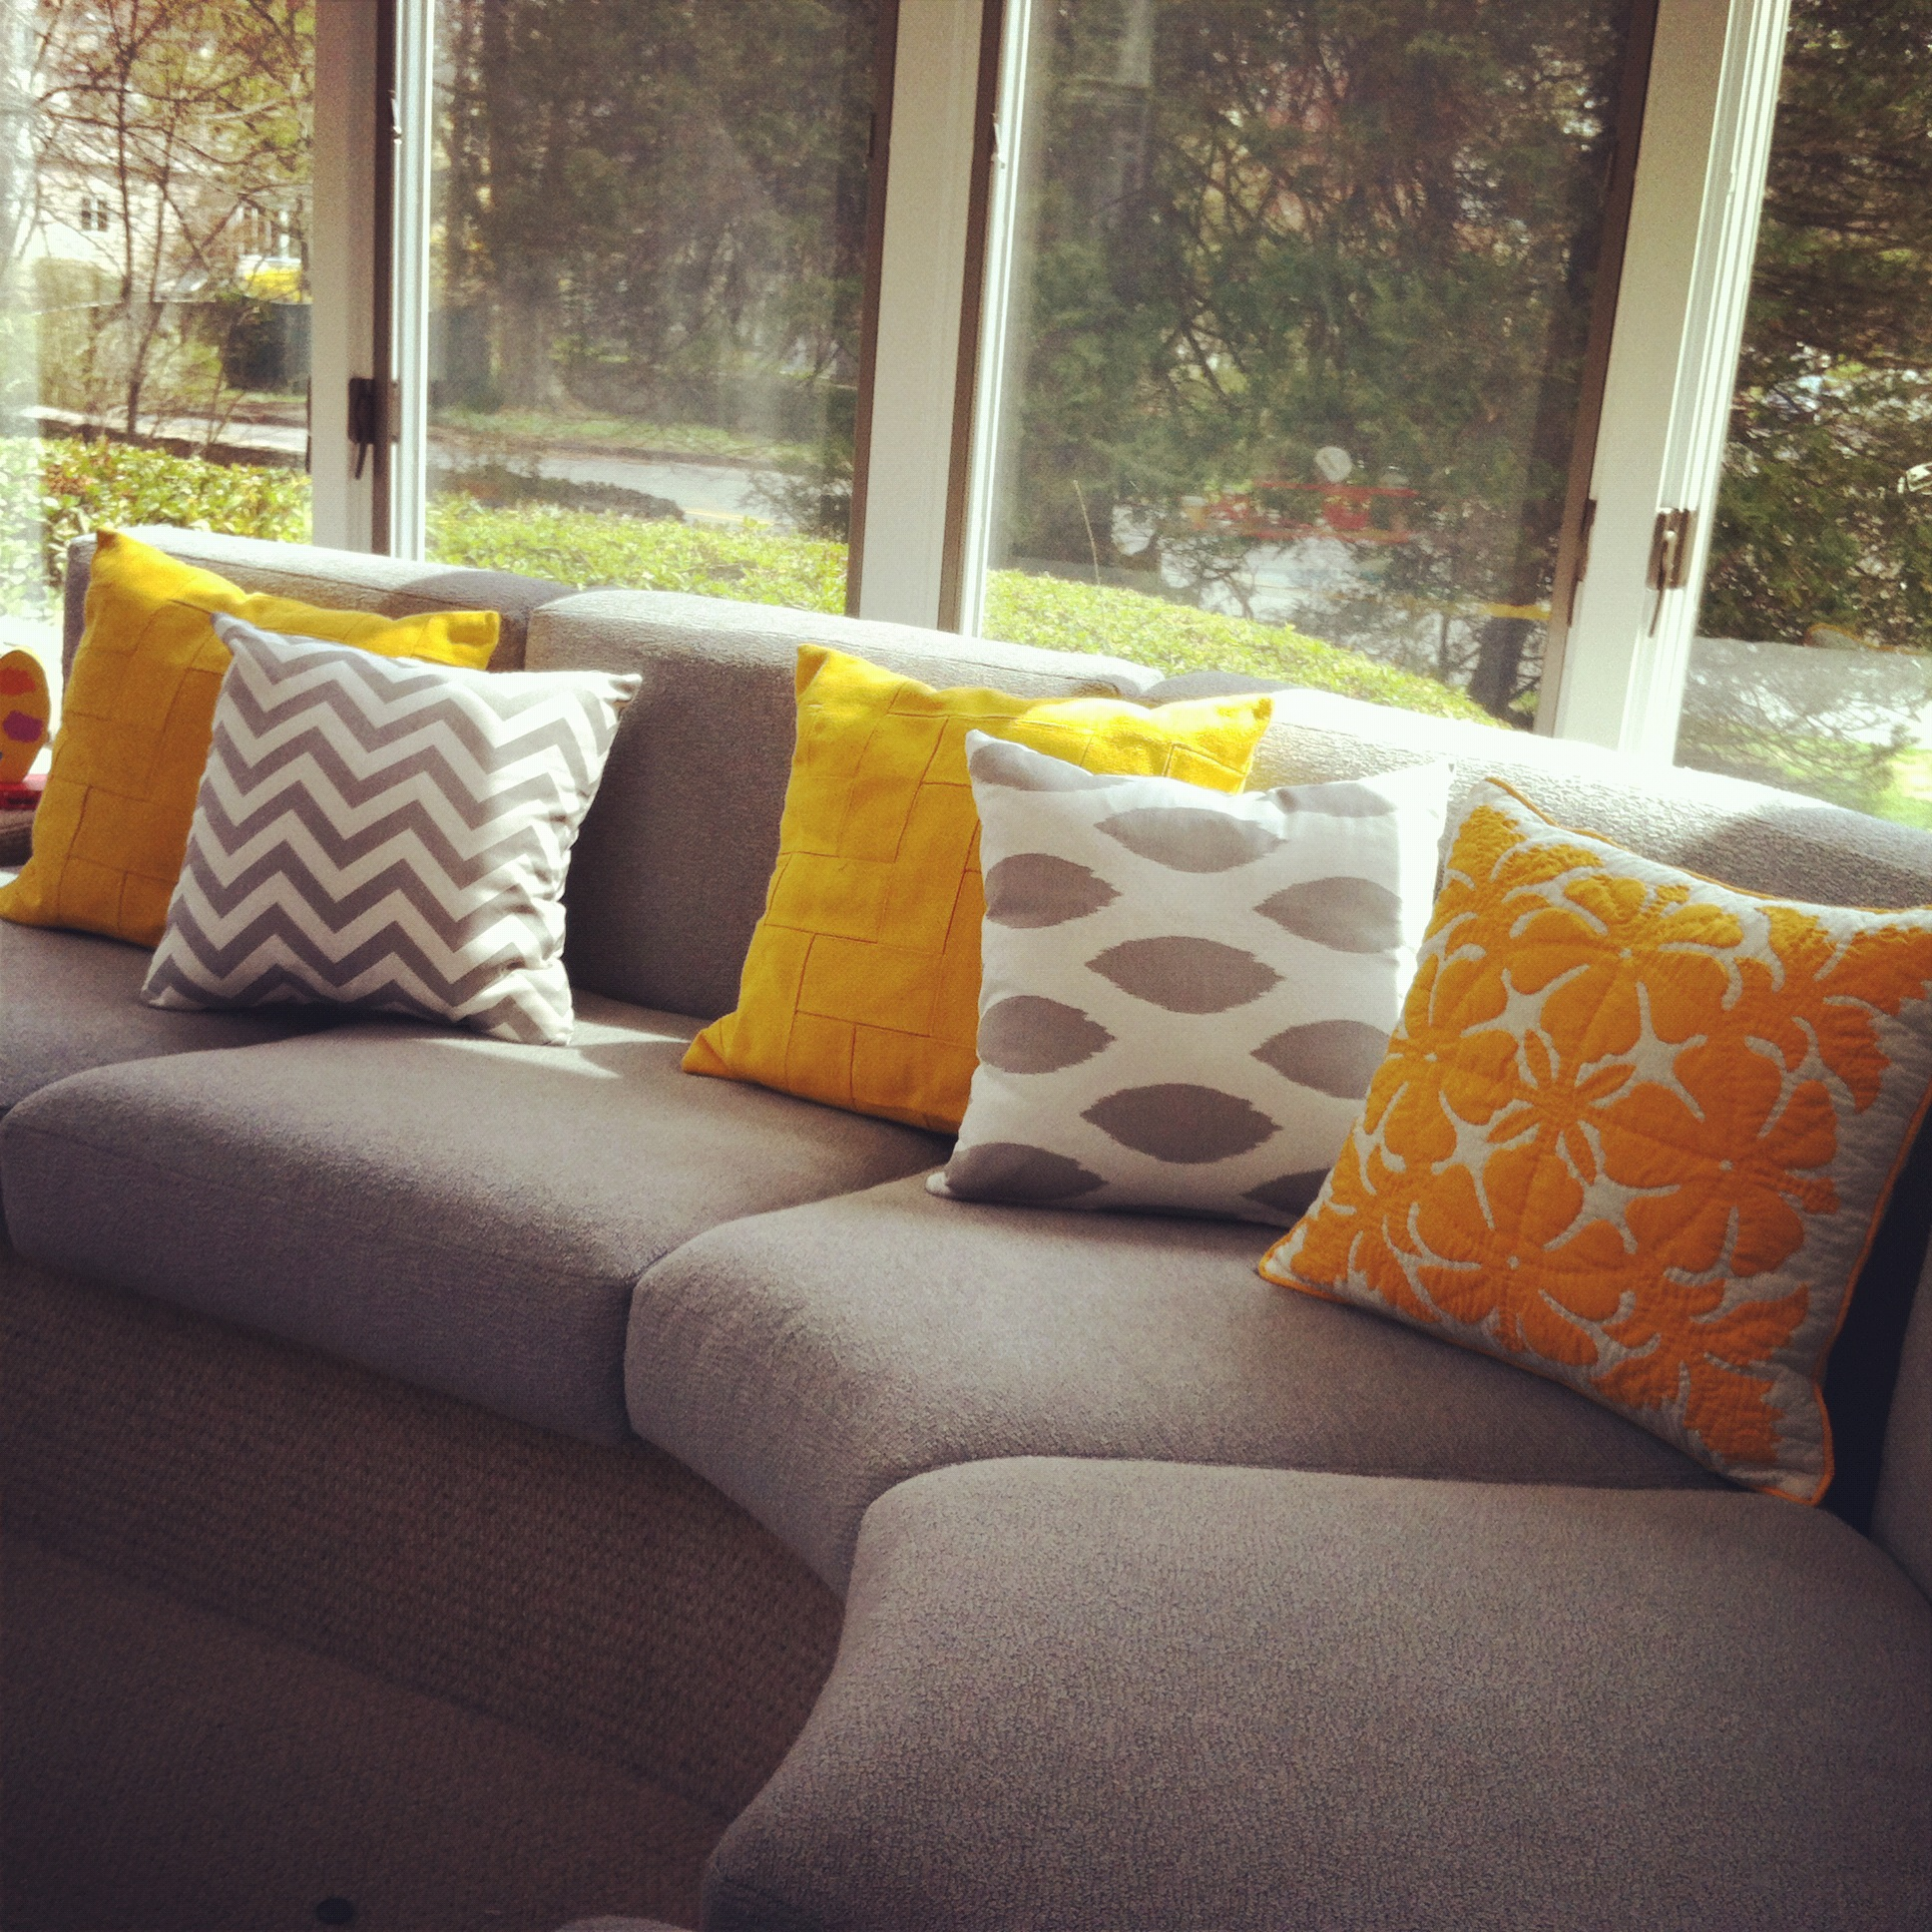 Picture of: decorative pillows for couch ideas